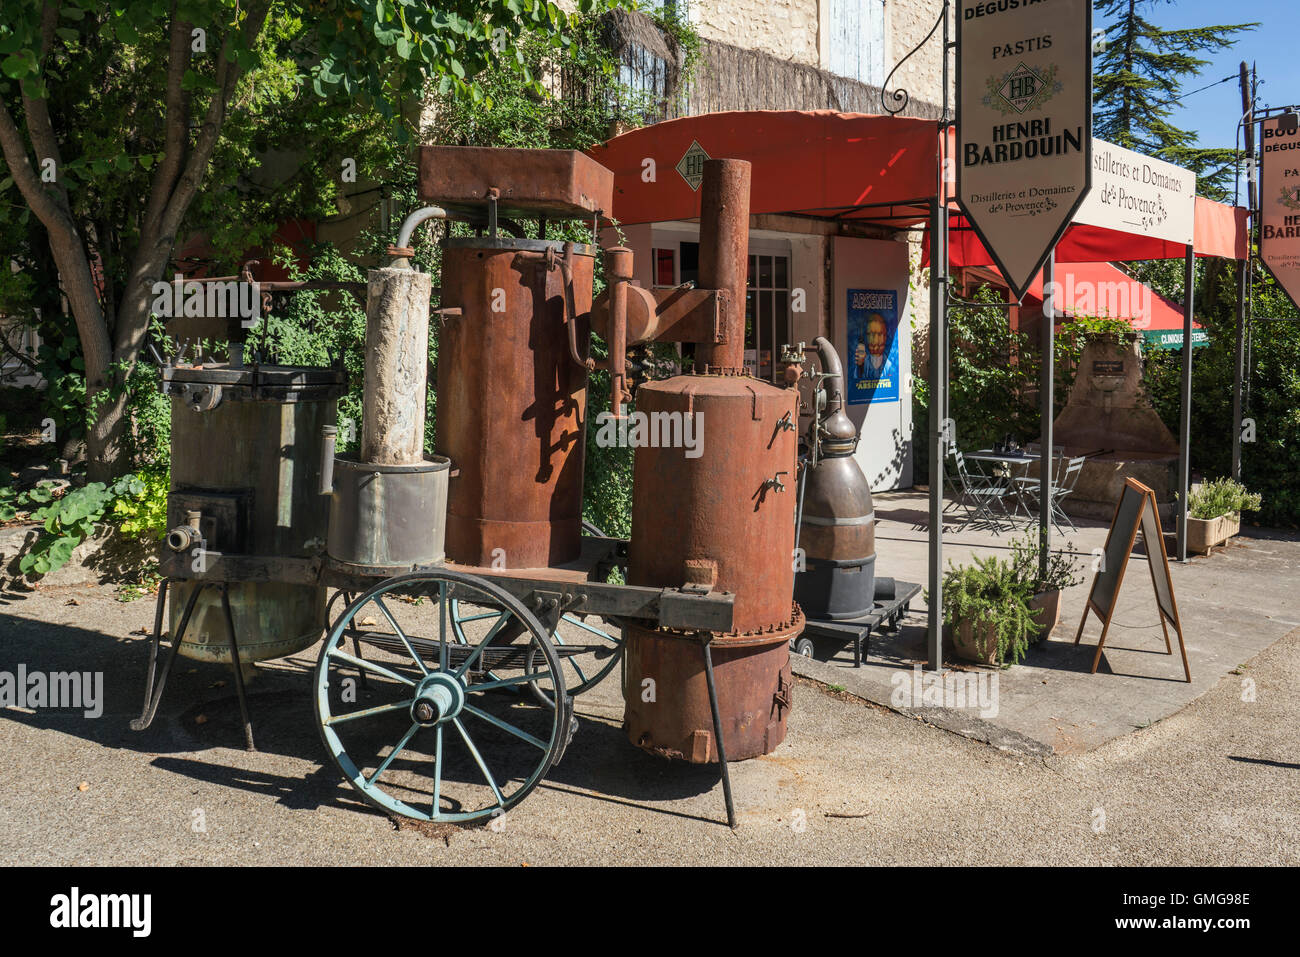 Distillerie Henri Bardouin, Forcualquier, Provence, France, Europe Photo Stock